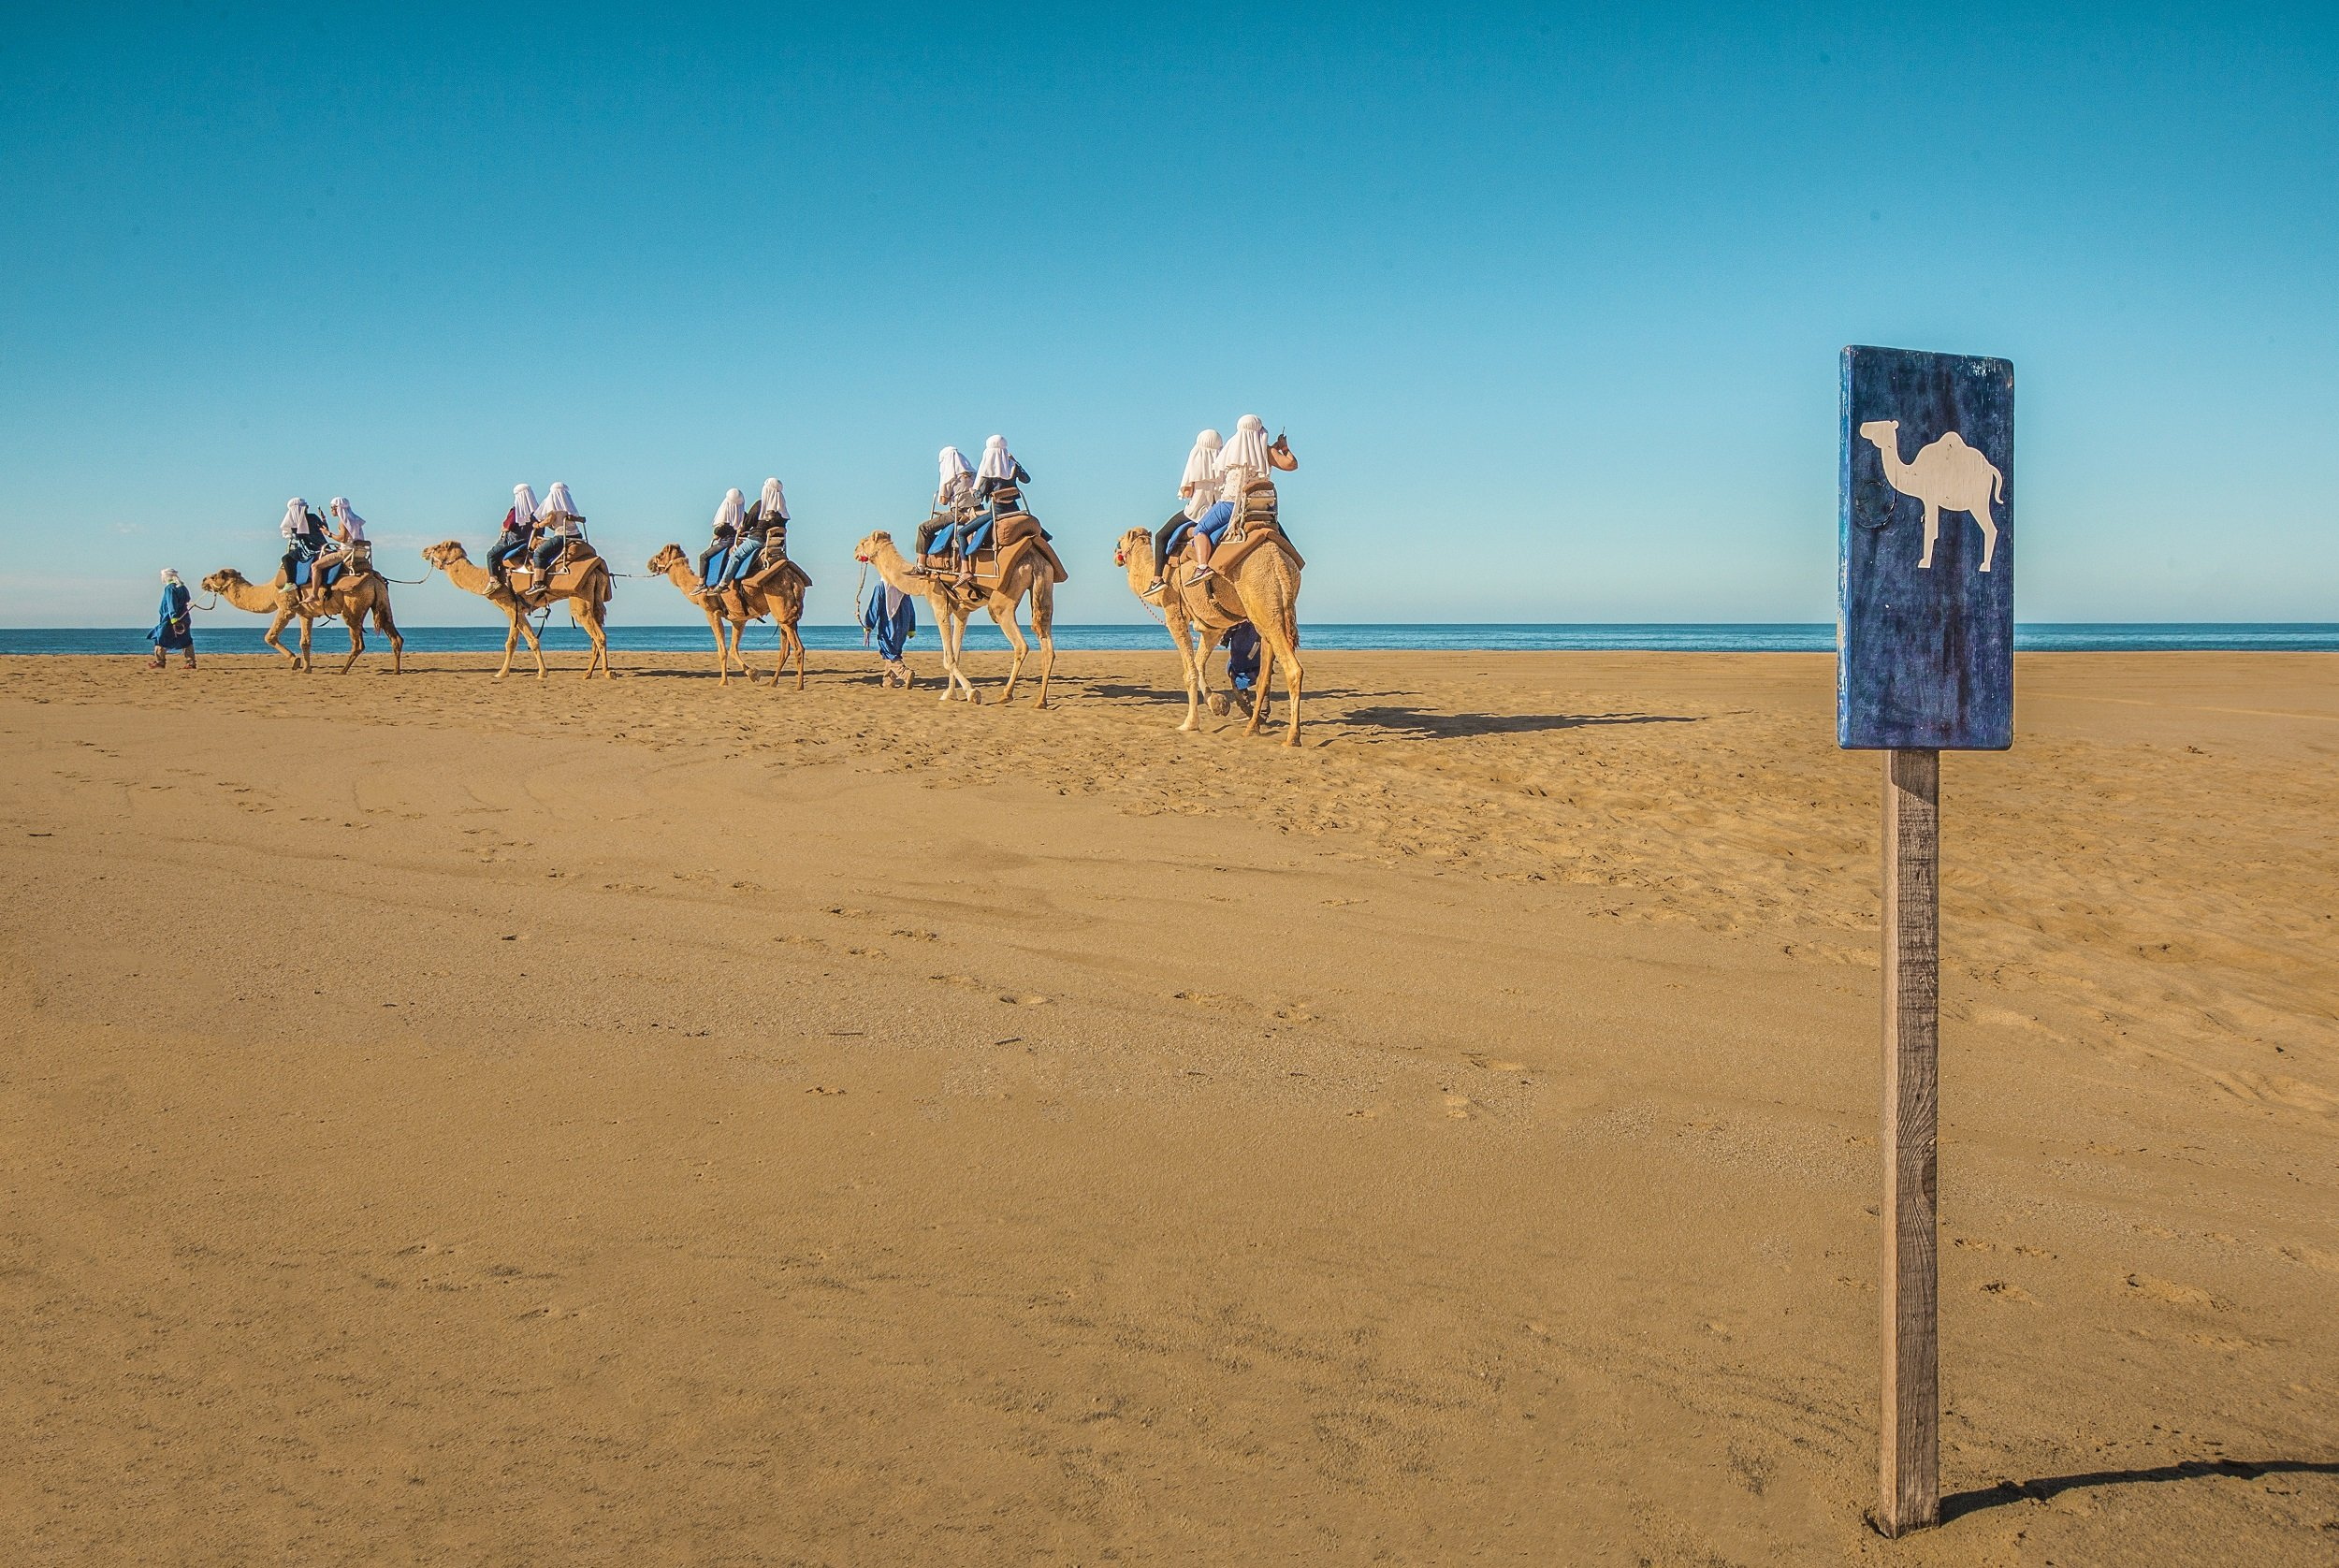 Mexican Outback Tour & Camel Safari From Los Cabos_54 (6)